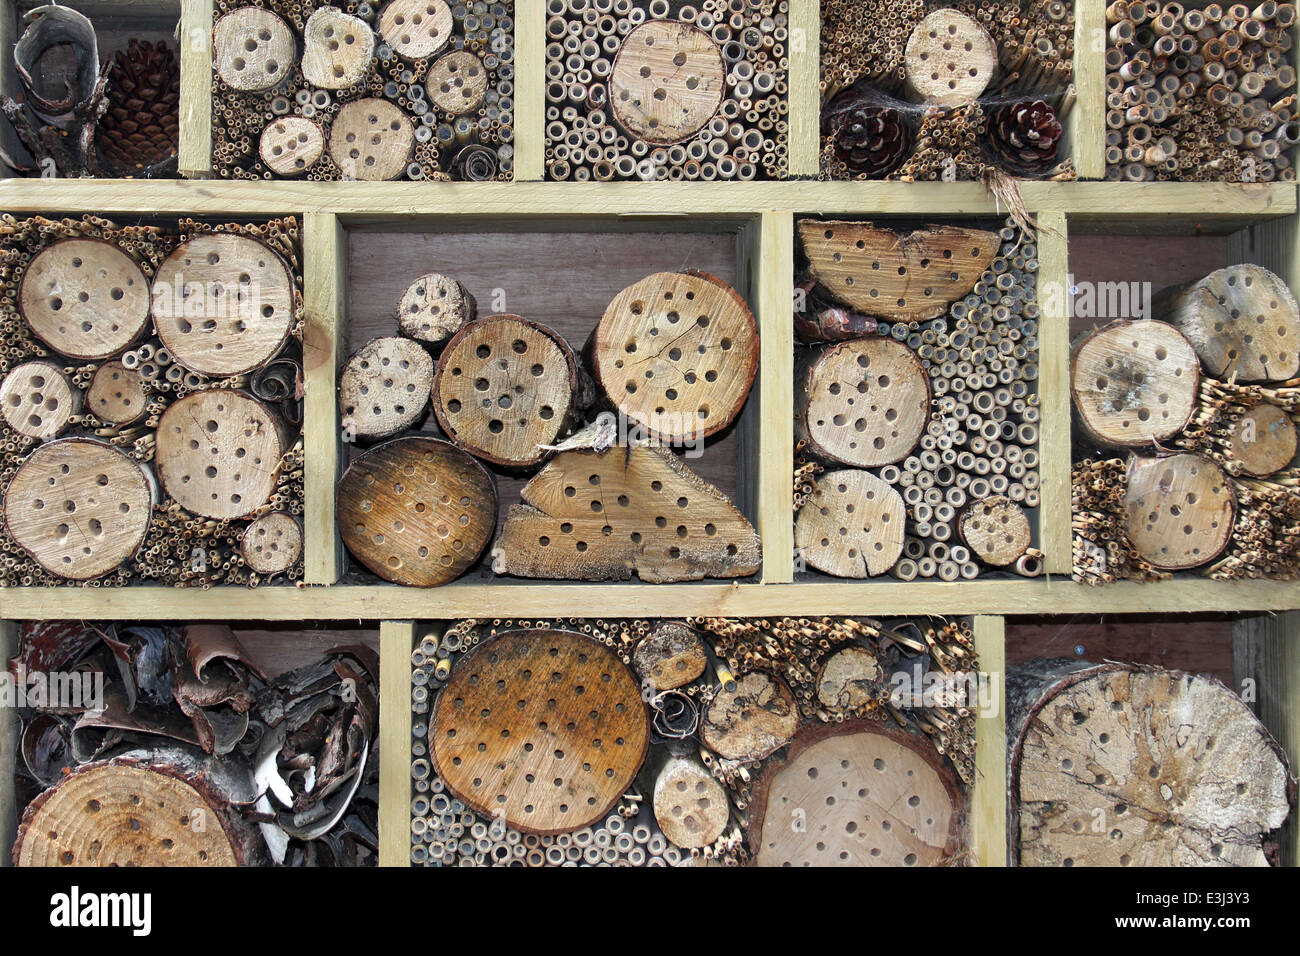 Bug House Providing Nesting Holes for A Variety Of Minibeasts Stock Photo